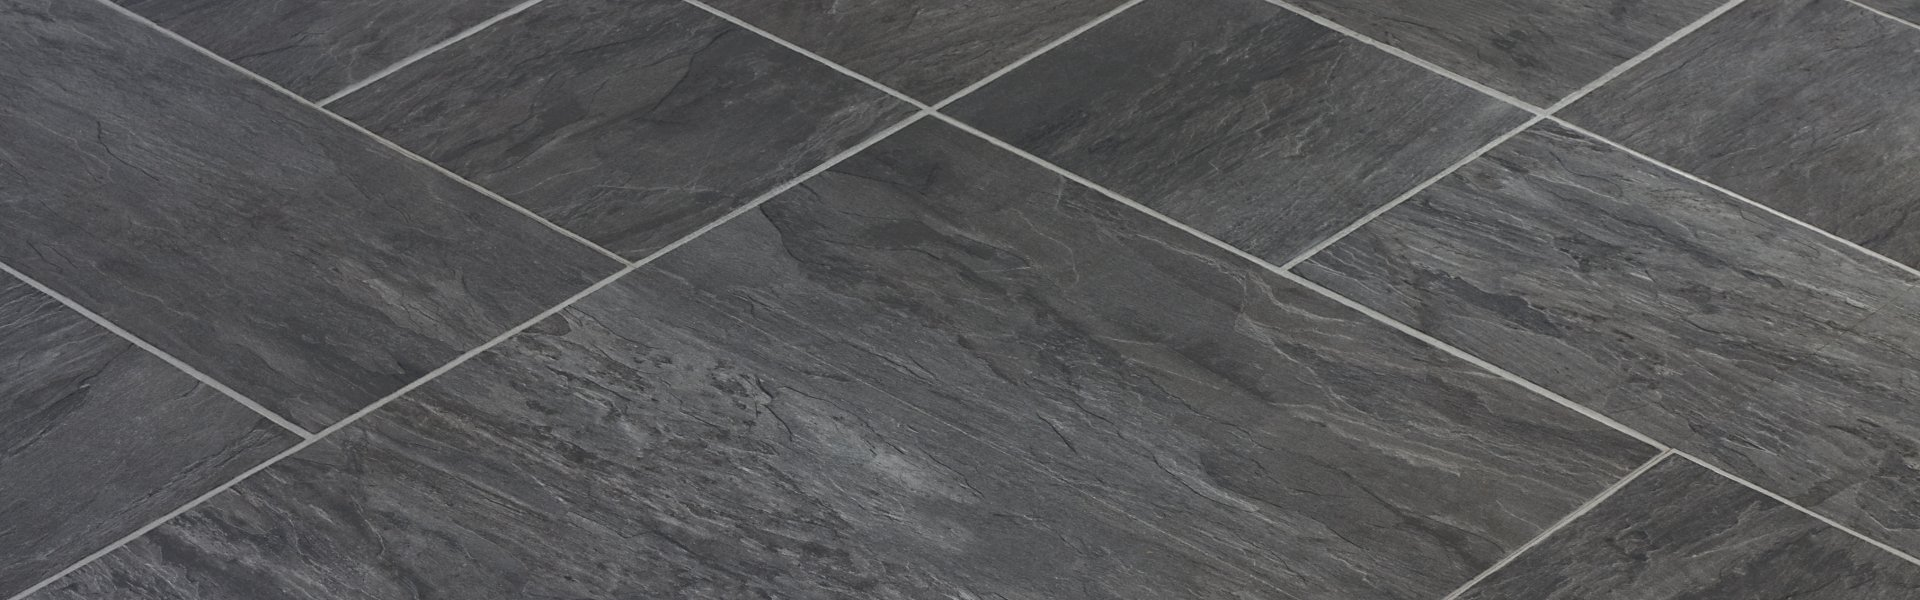 Durable Vinyl Flooring For Your Home In Chorley